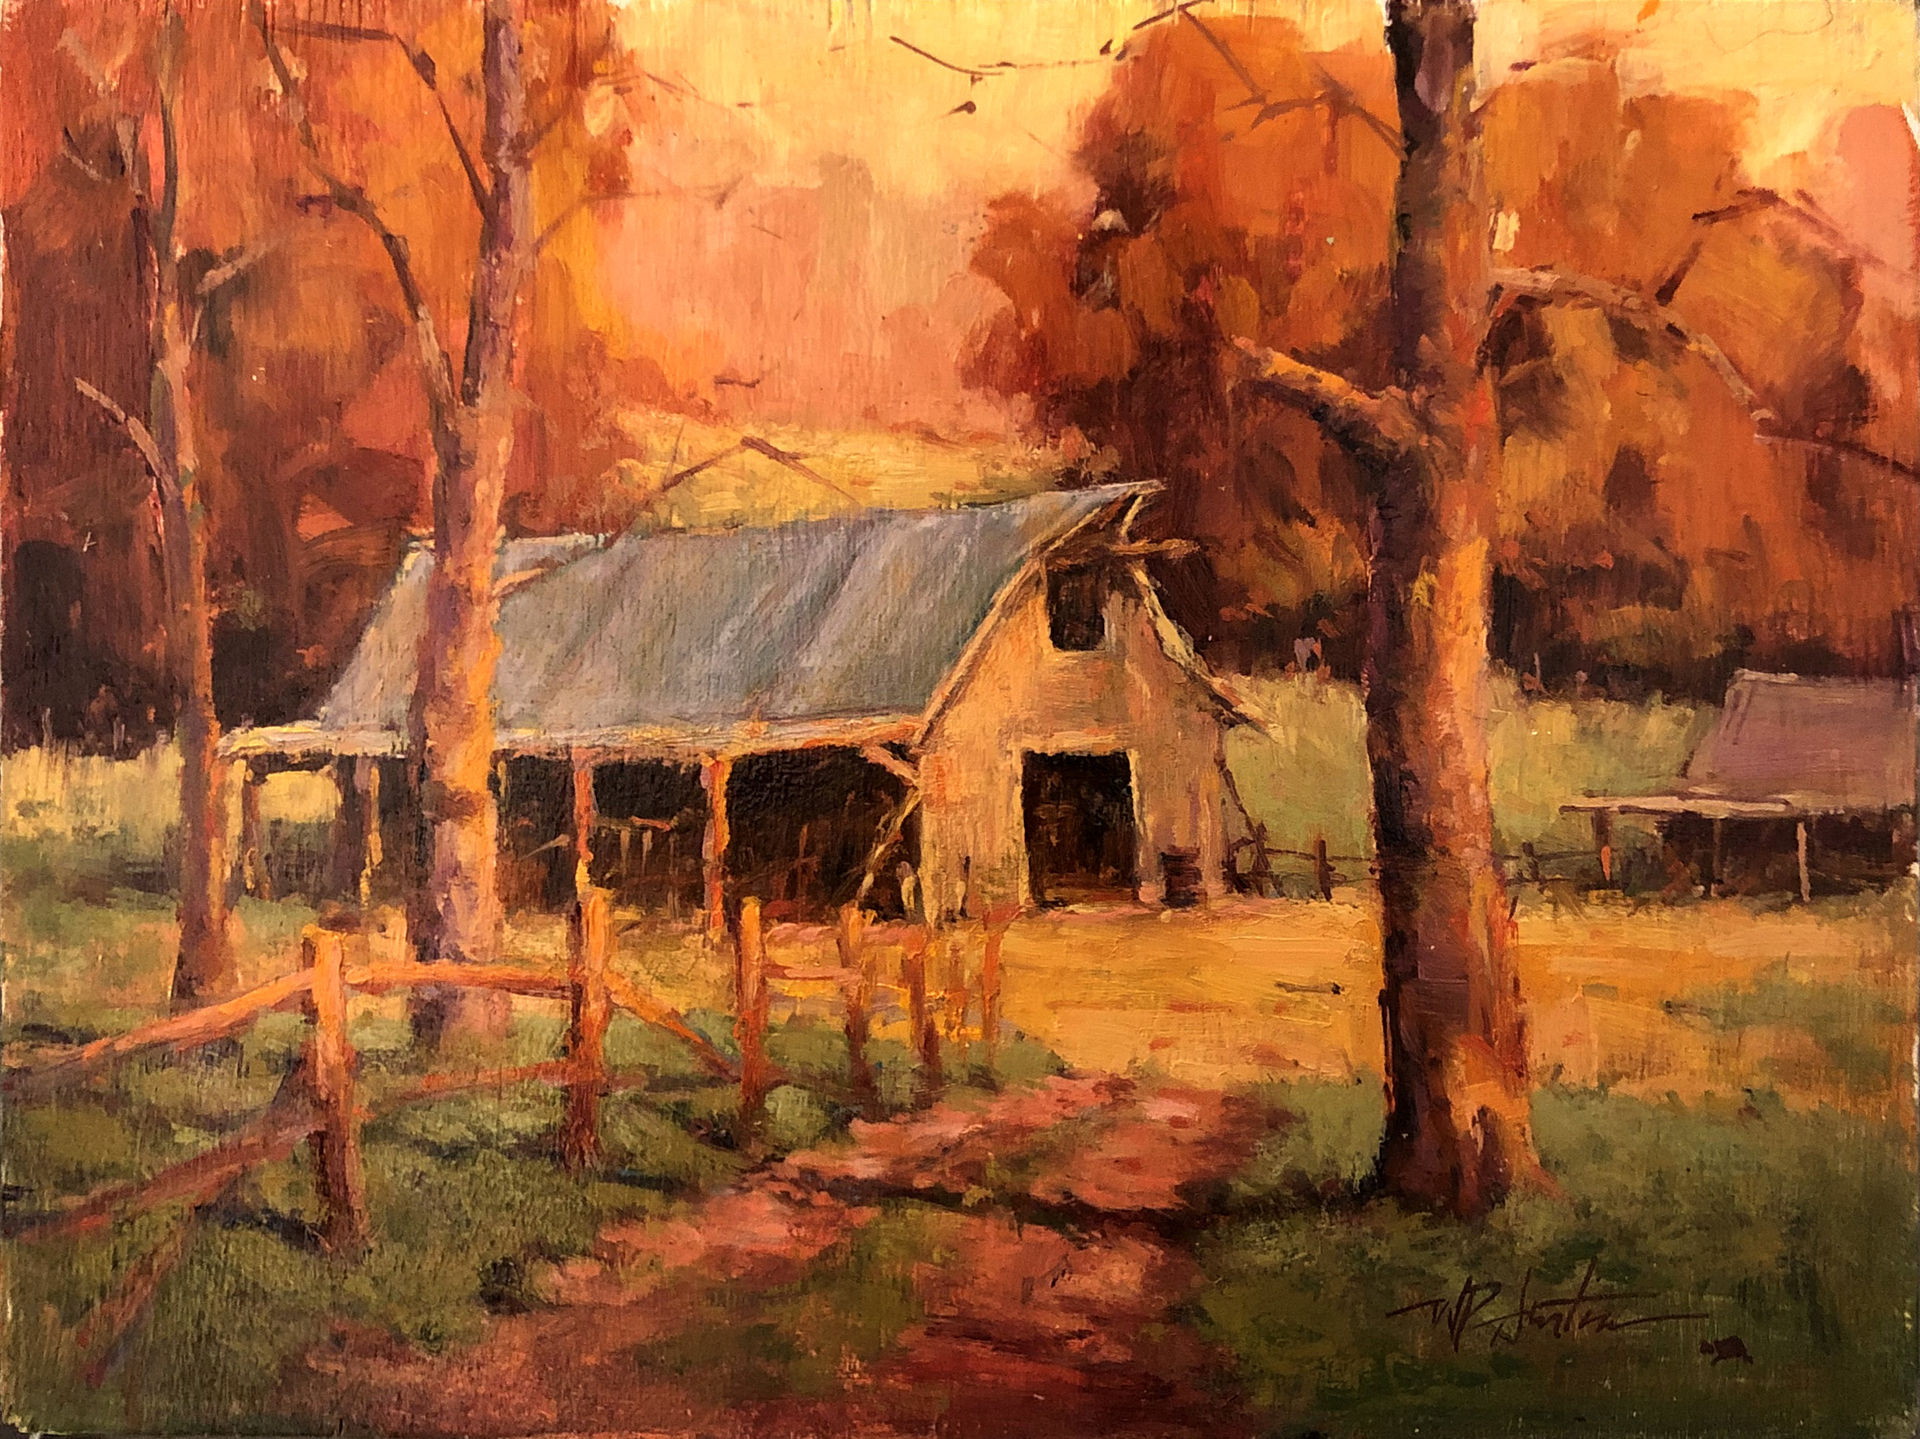 Barn in the Hollow by Perry Austin